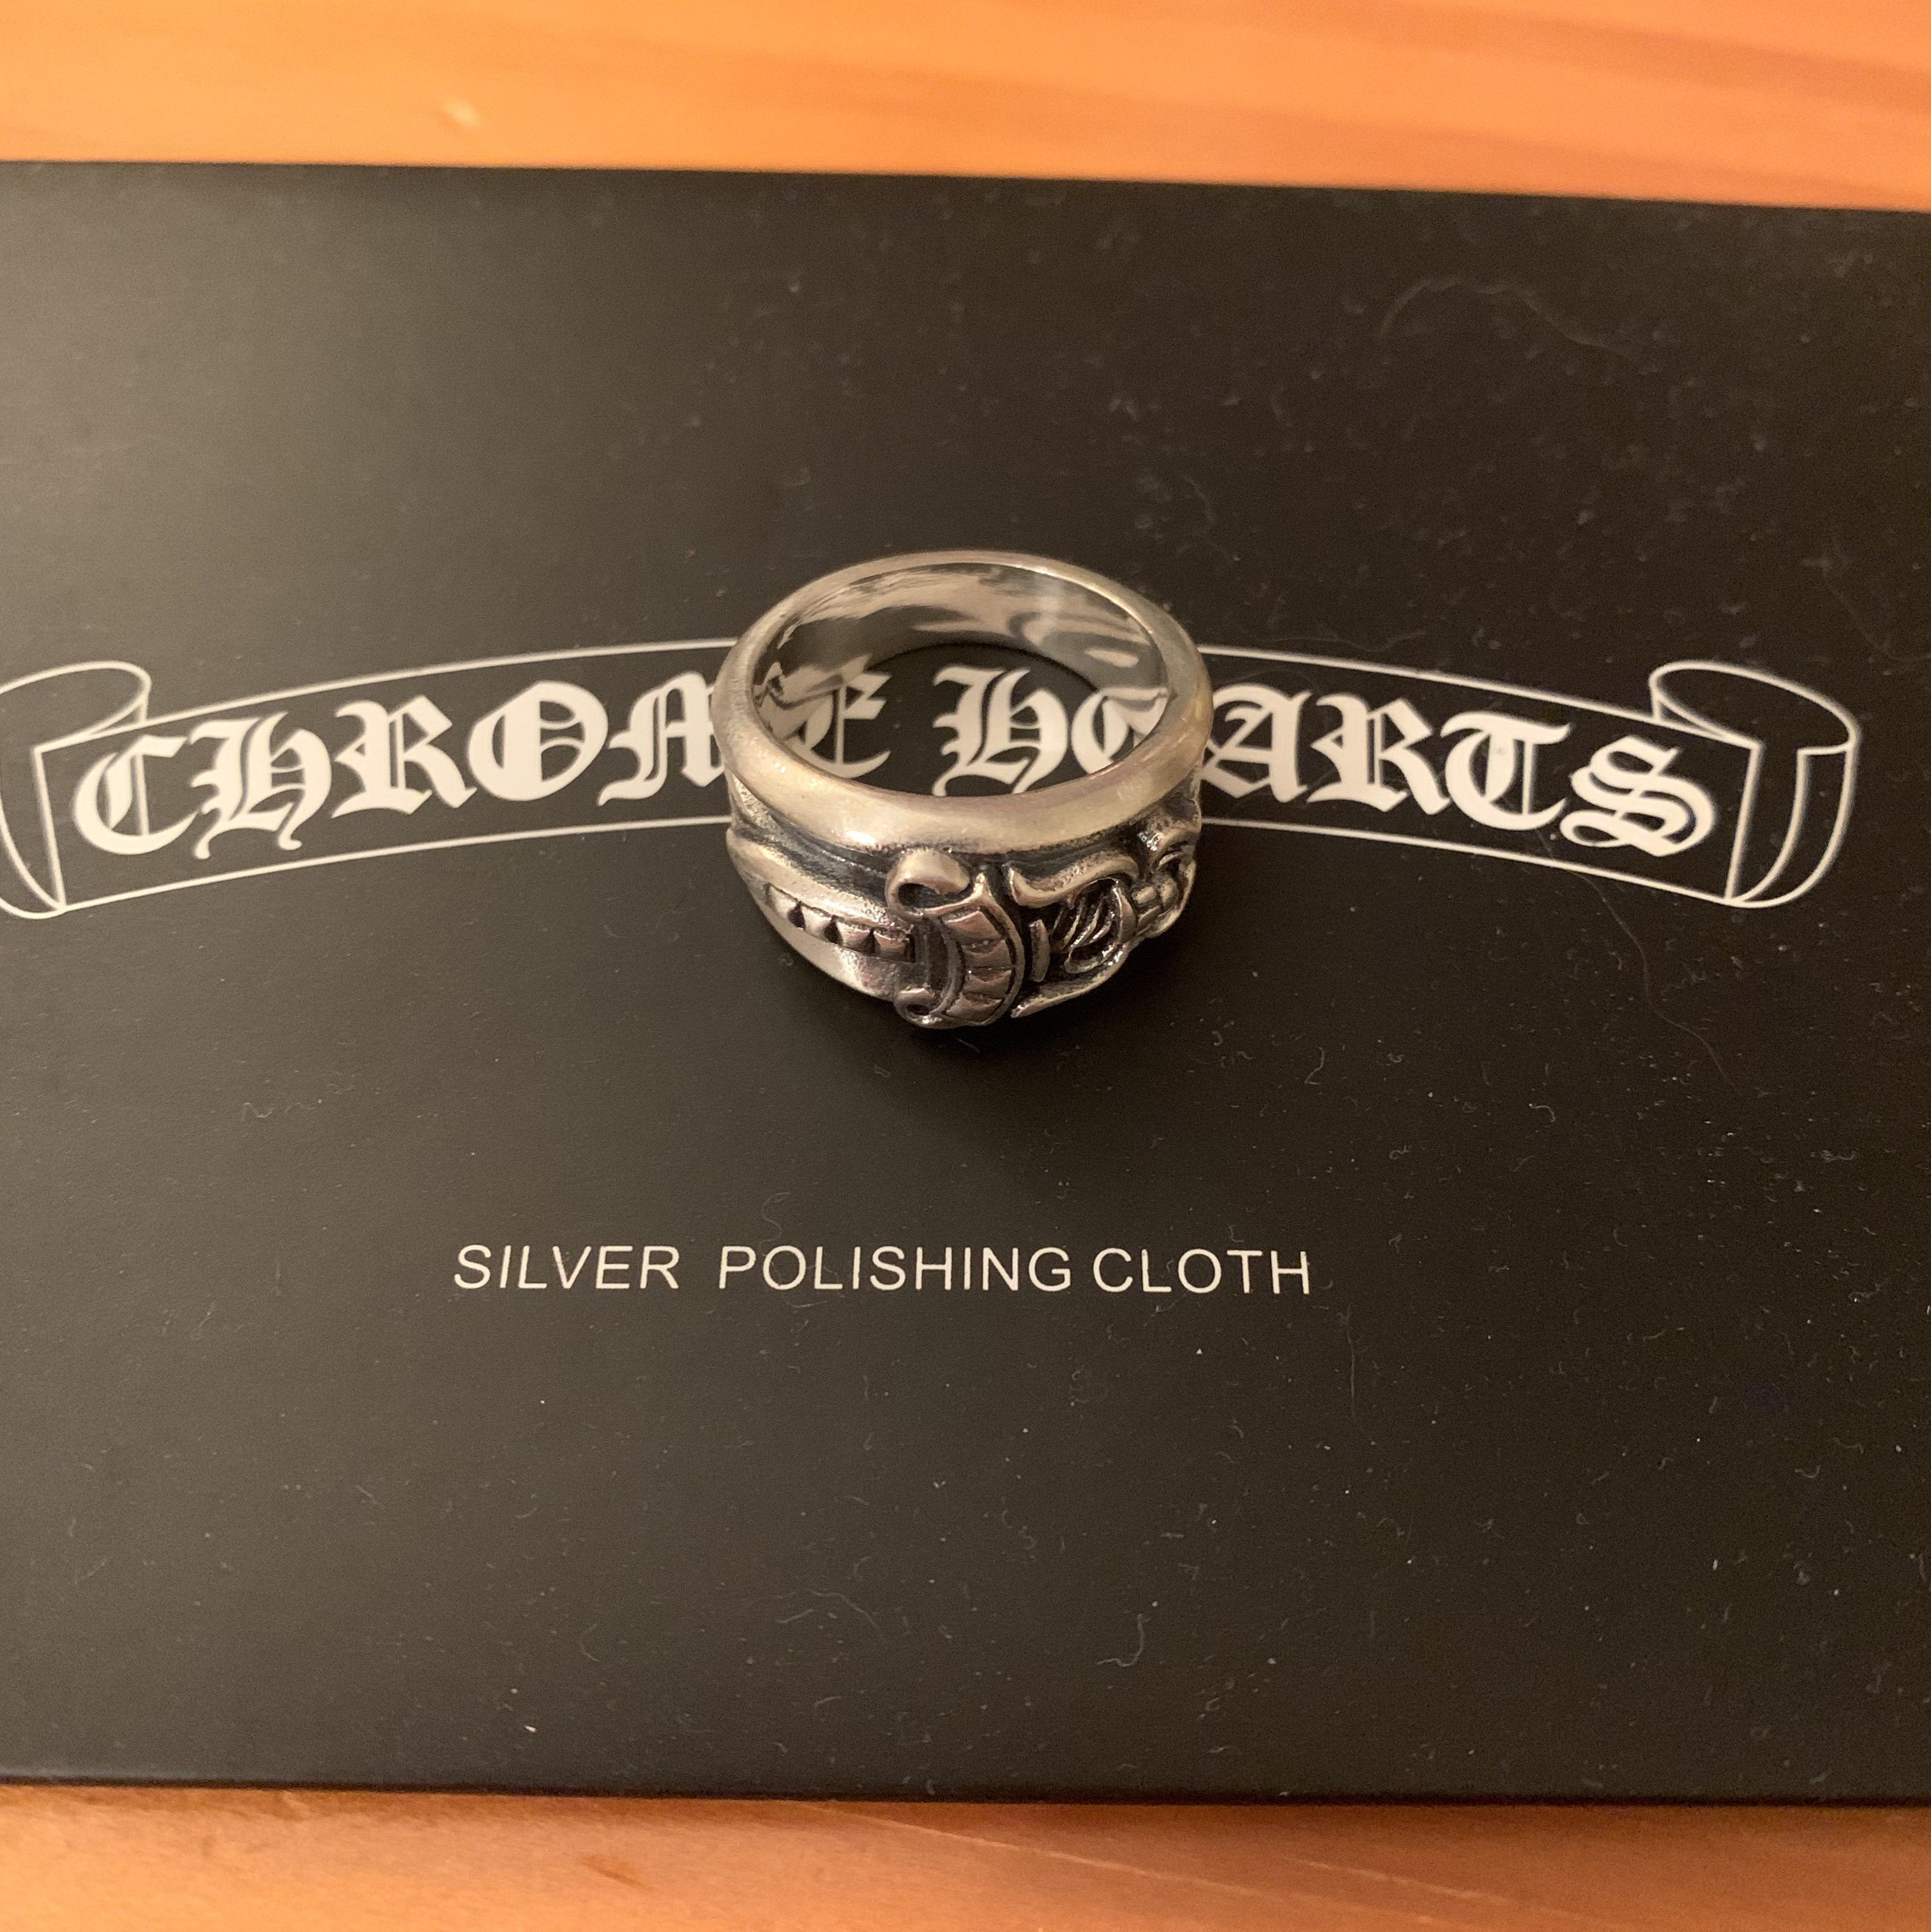 Product Image 1 - Chrome Hearts Dagger Ring. Comes